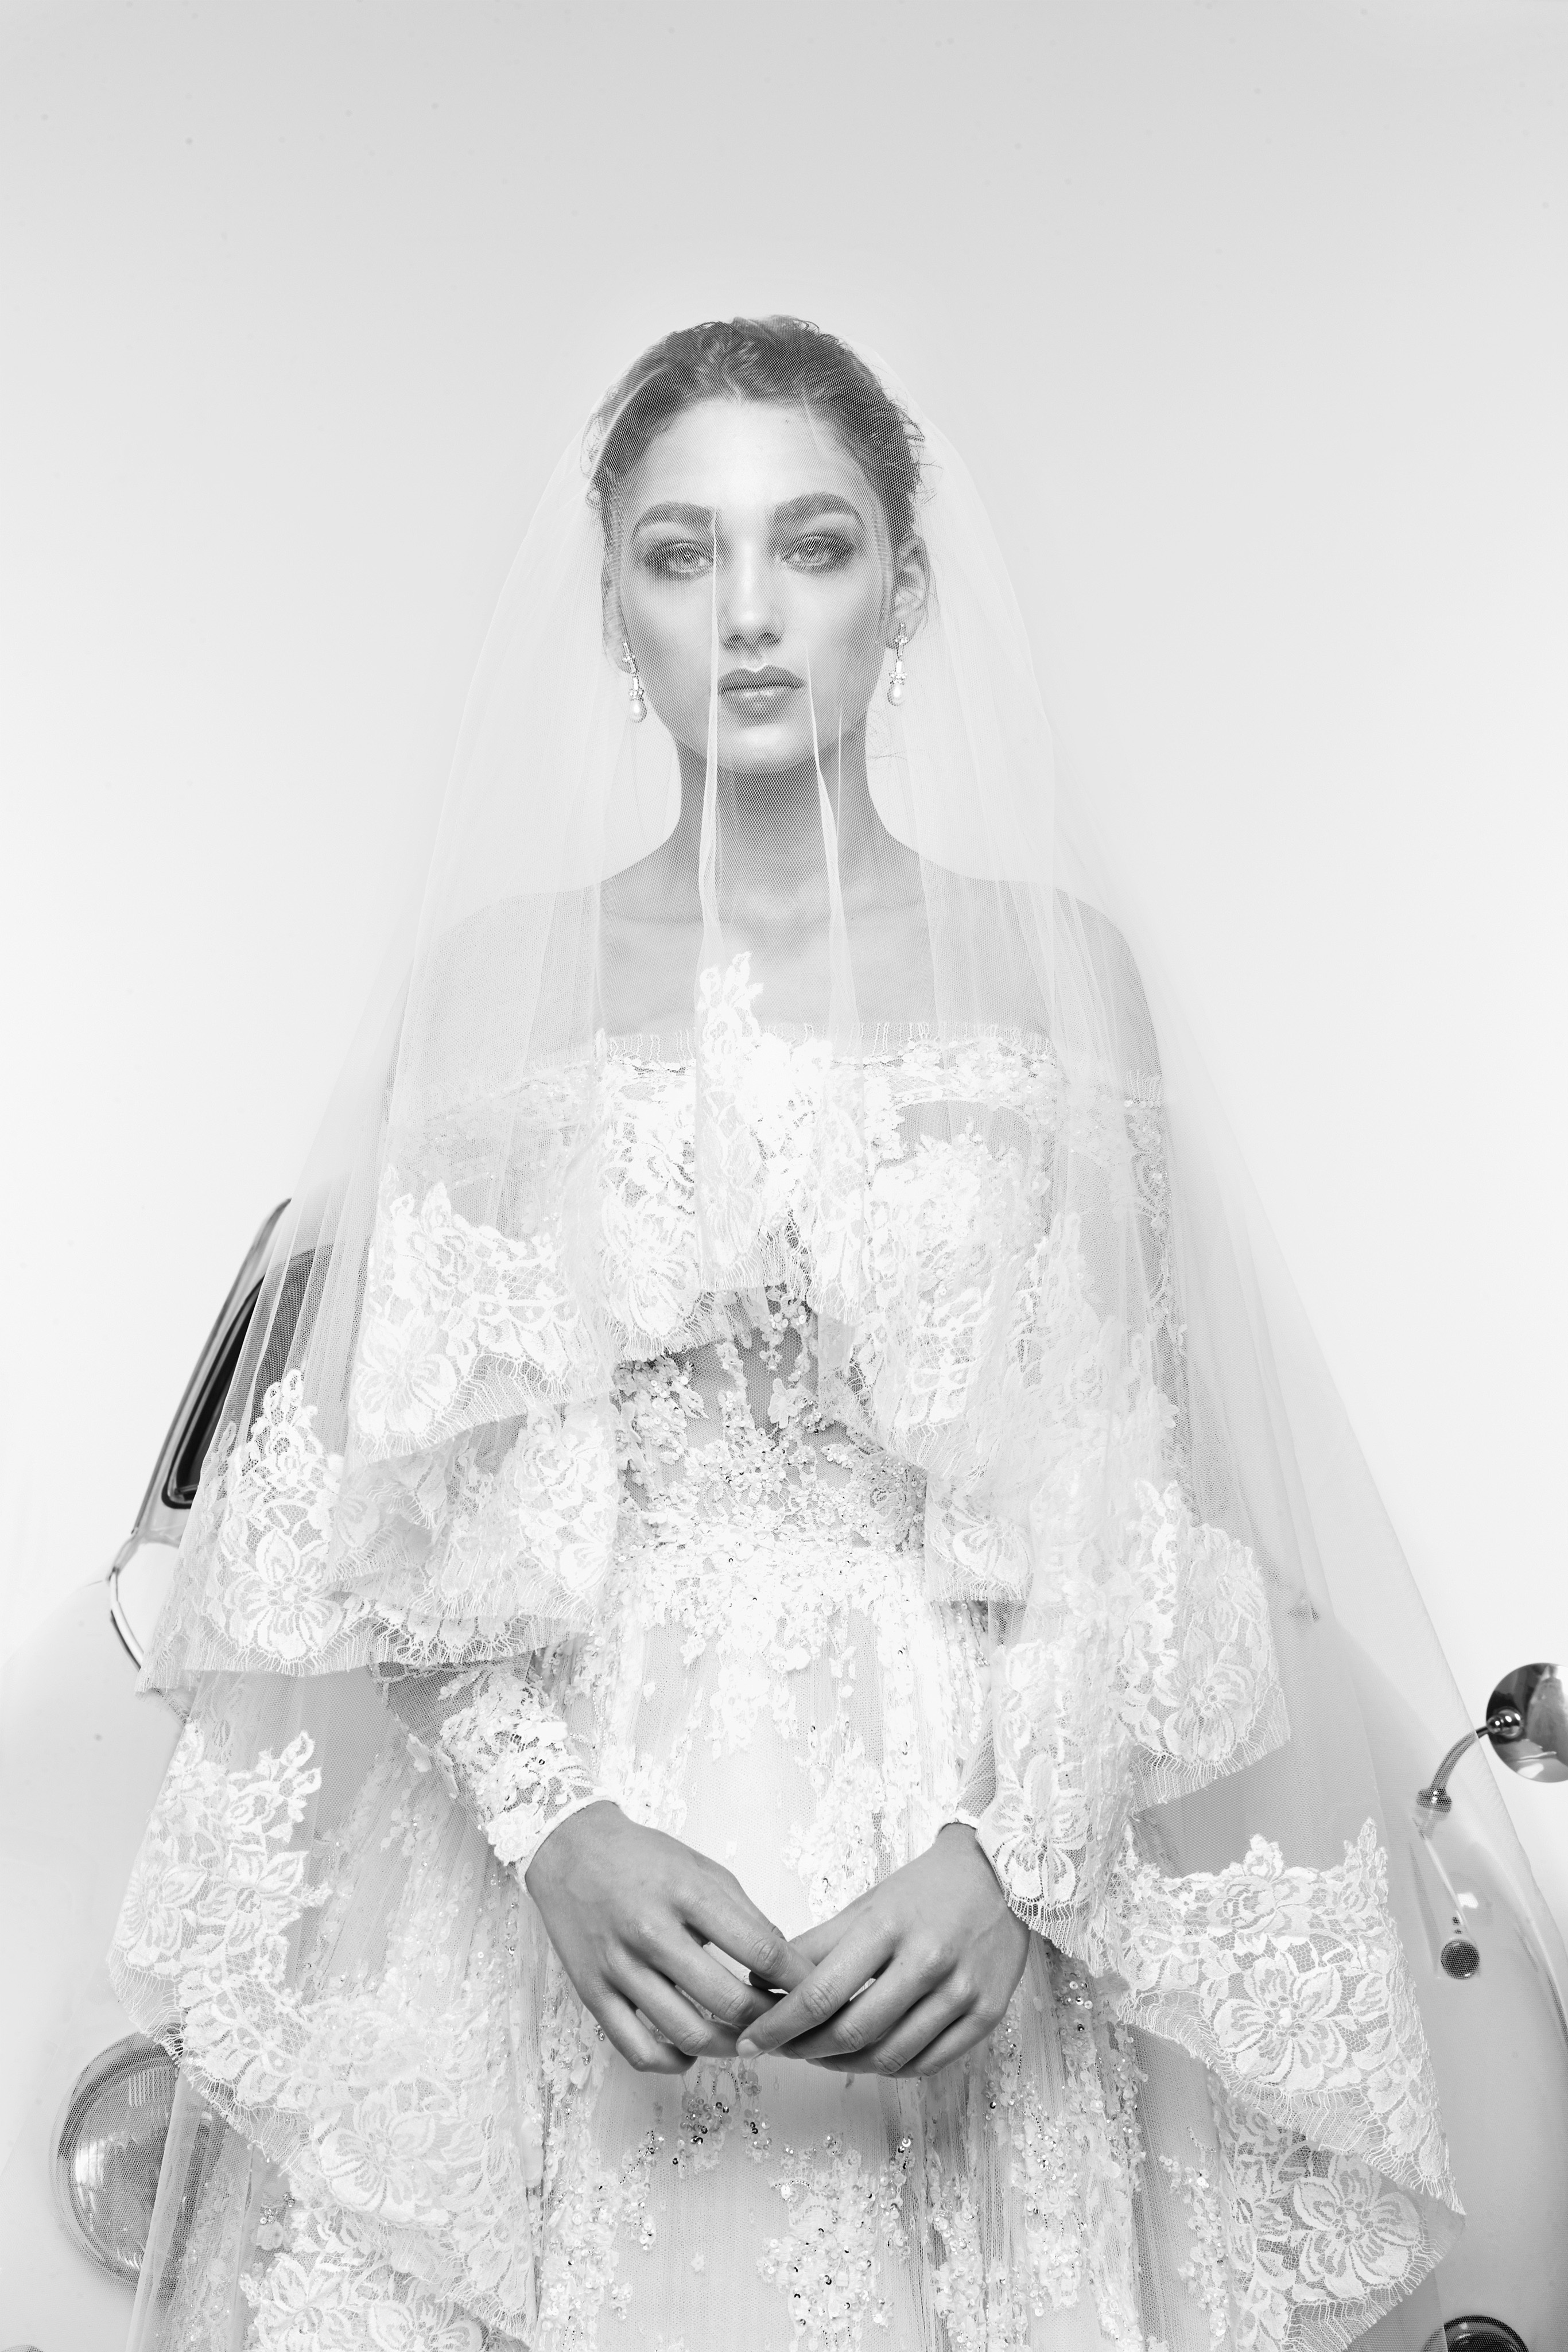 zuhair murad wedding dress spring 2019 layered off-the-shoulder with veil